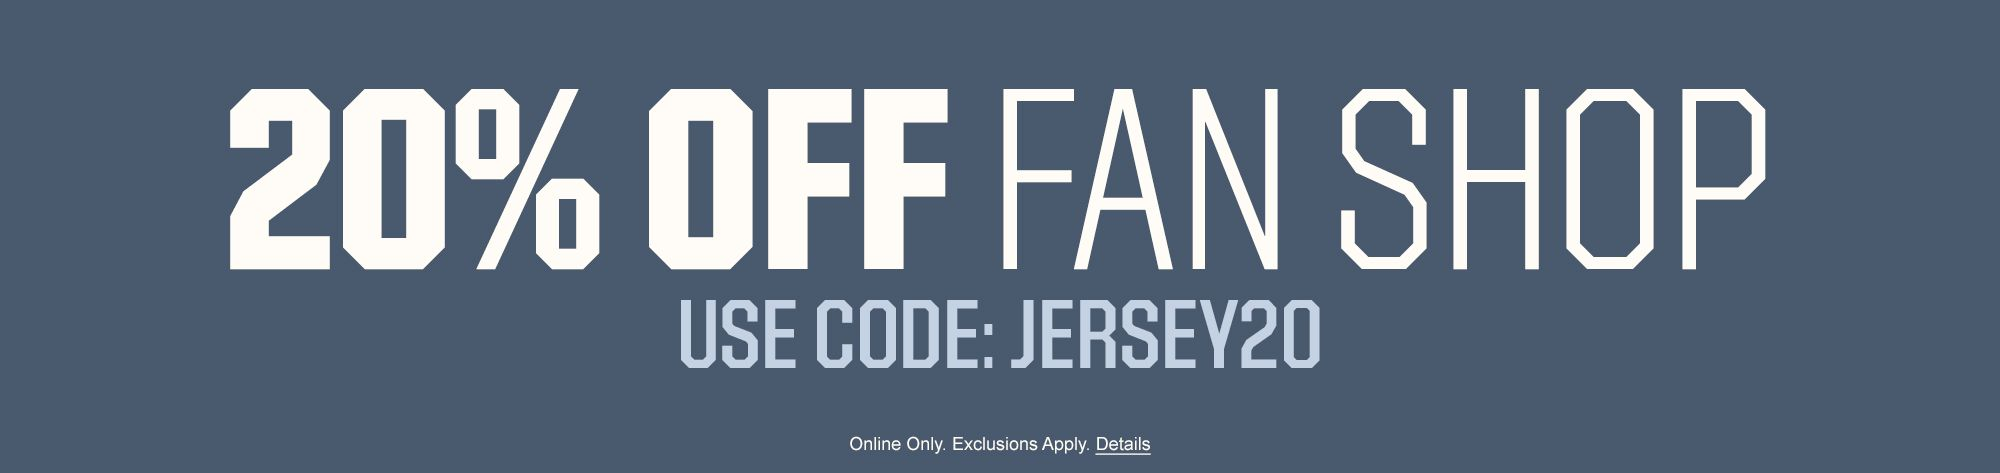 20% off Fan Gear - Use Code JERSEY20